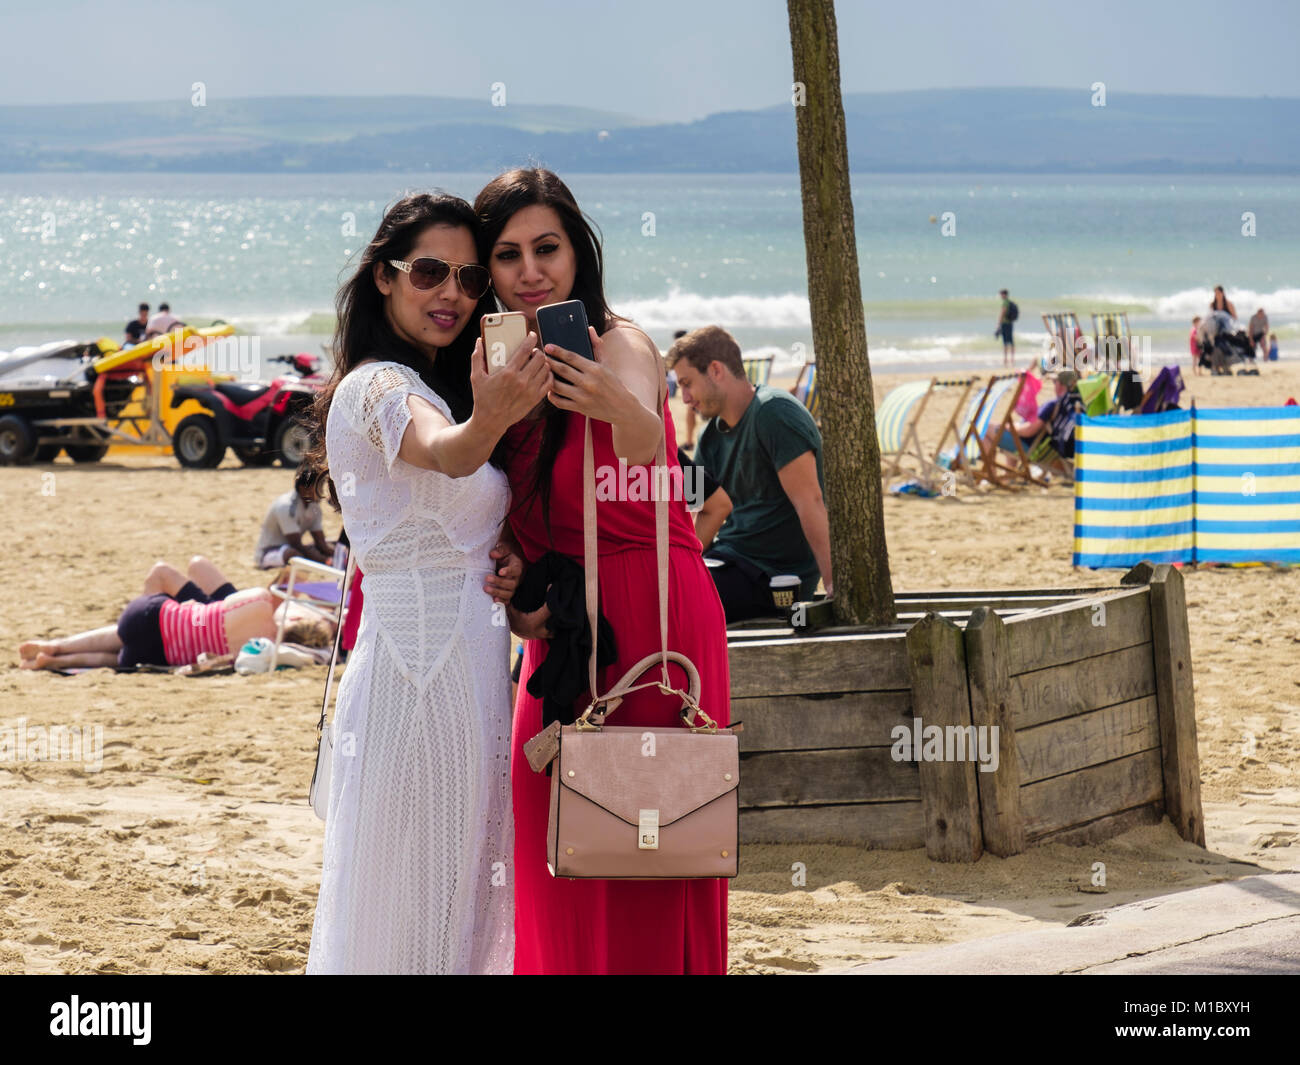 Two smartly dressed young millennial women taking selfies together using smartphones on a beach in late summer. Stock Photo